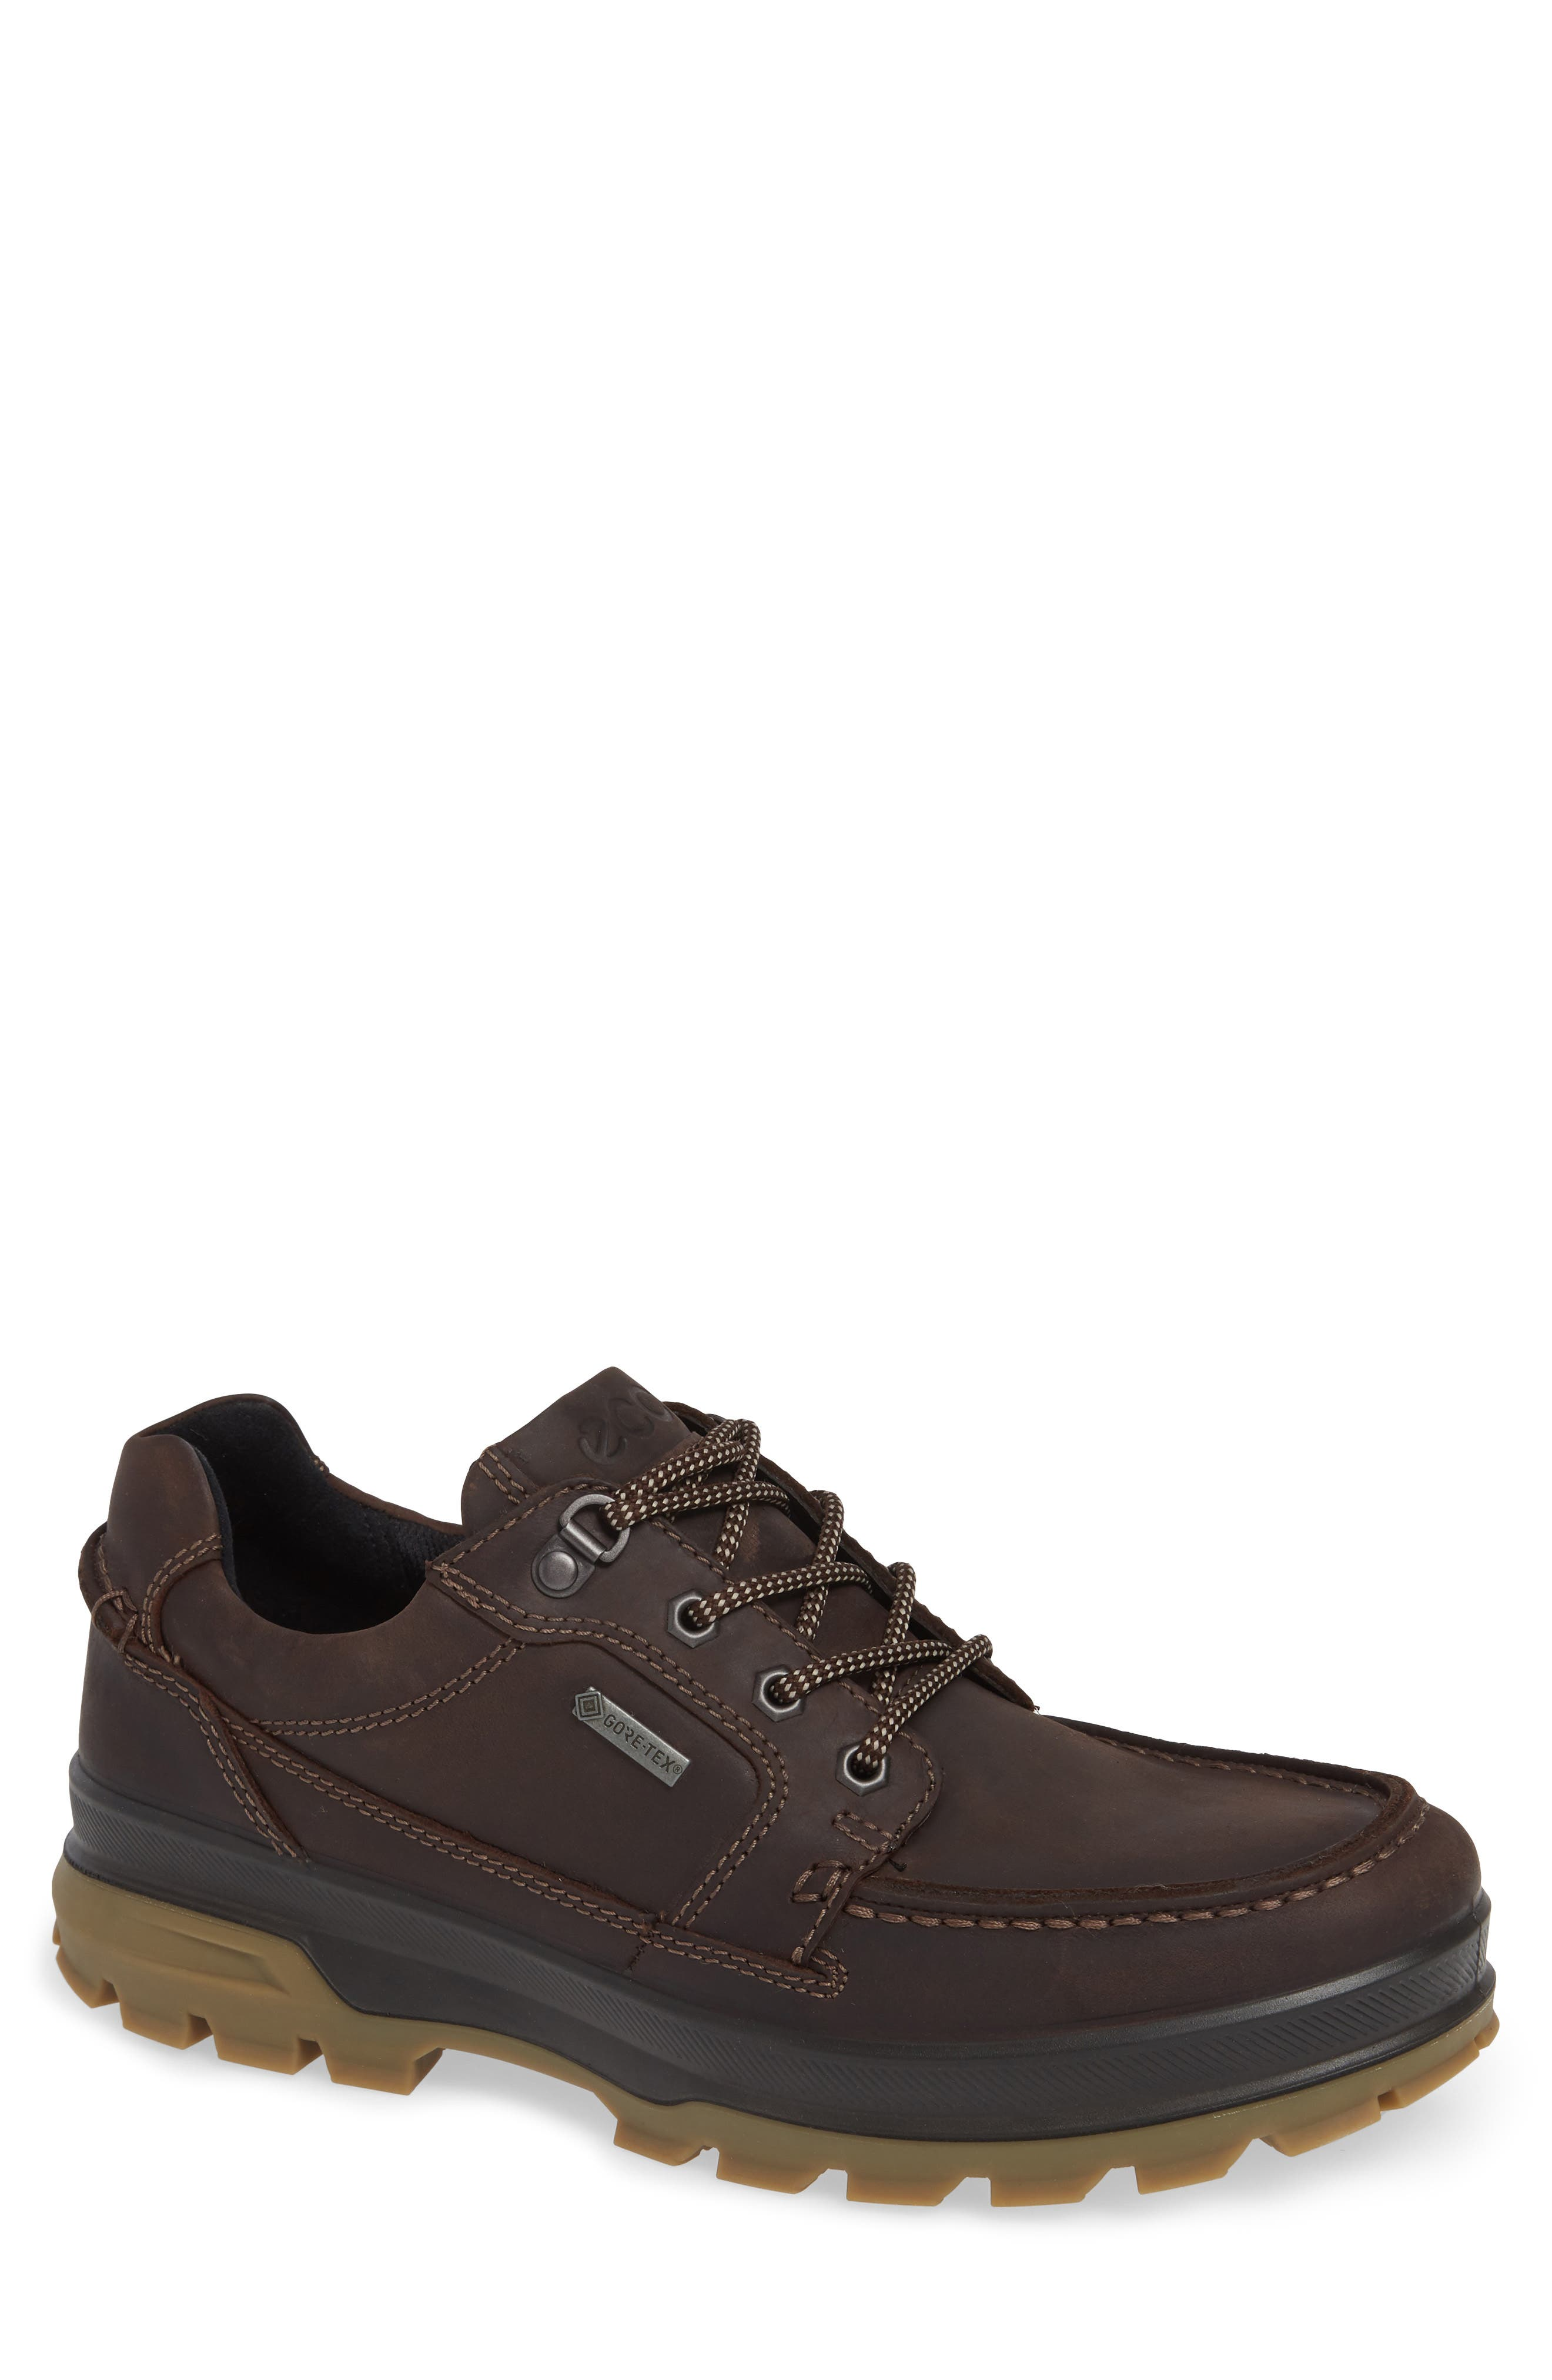 Rugged Track Low Gore-Tex<sup>®</sup> Oxford,                         Main,                         color, MOCHA LEATHER